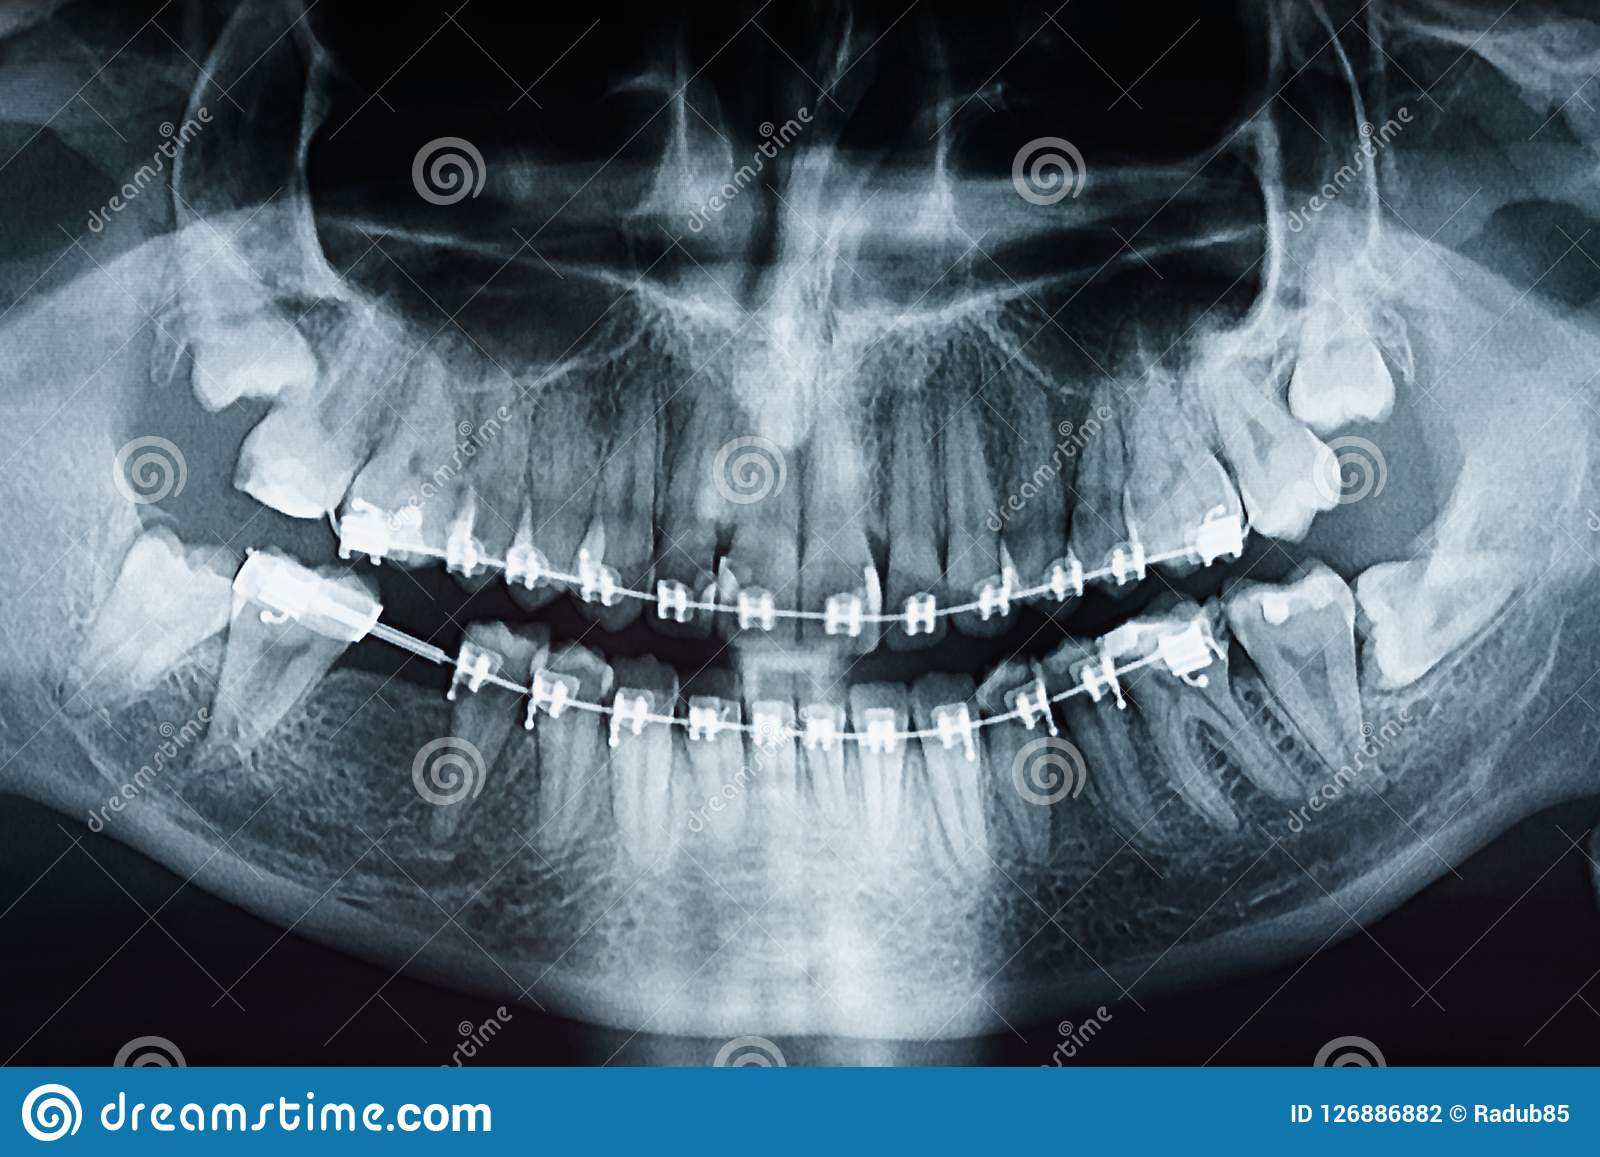 Dental X Ray Photo Of Human Skull And Teeth With Braces